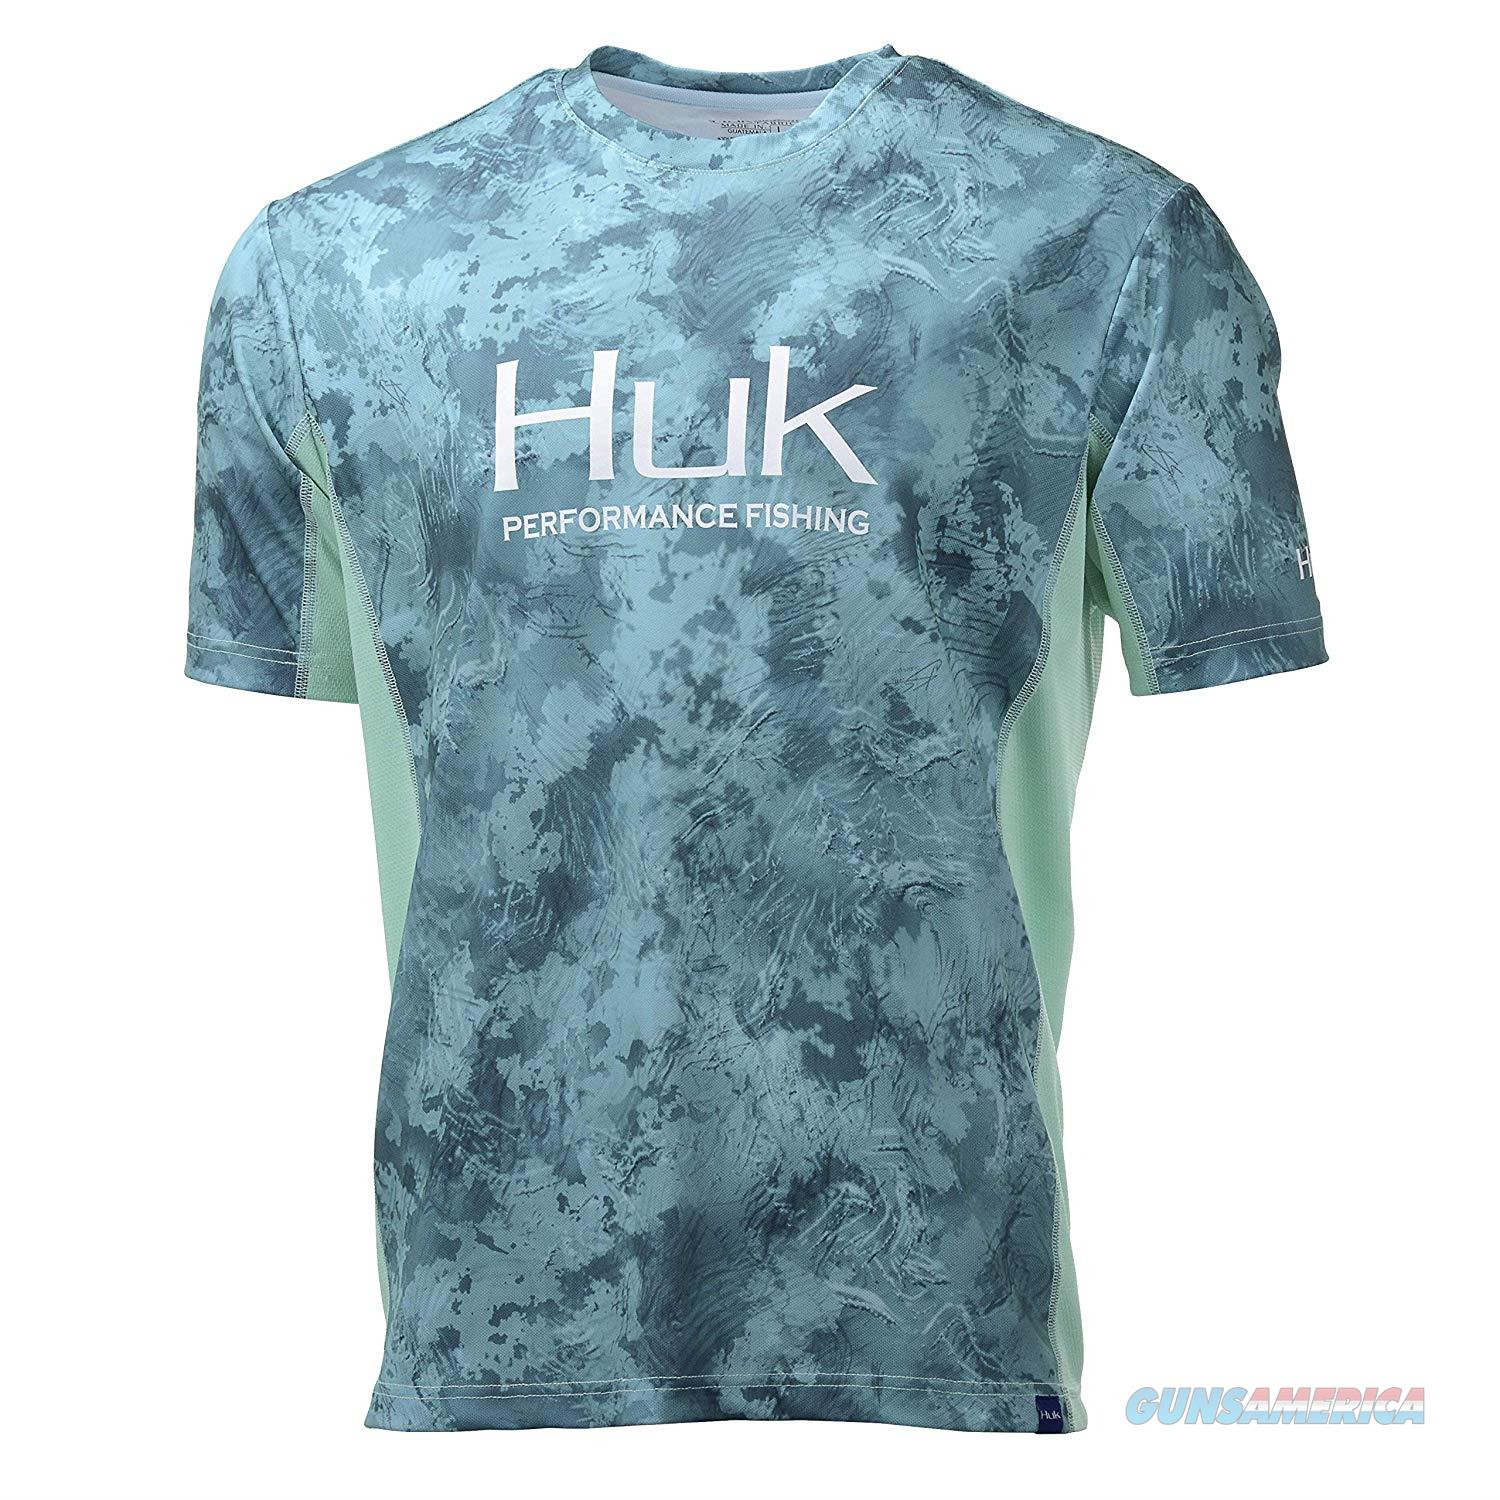 Huk Icon Camo SS Shirt Shallows LG  Non-Guns > Hunting Clothing and Equipment > Clothing > Shirts